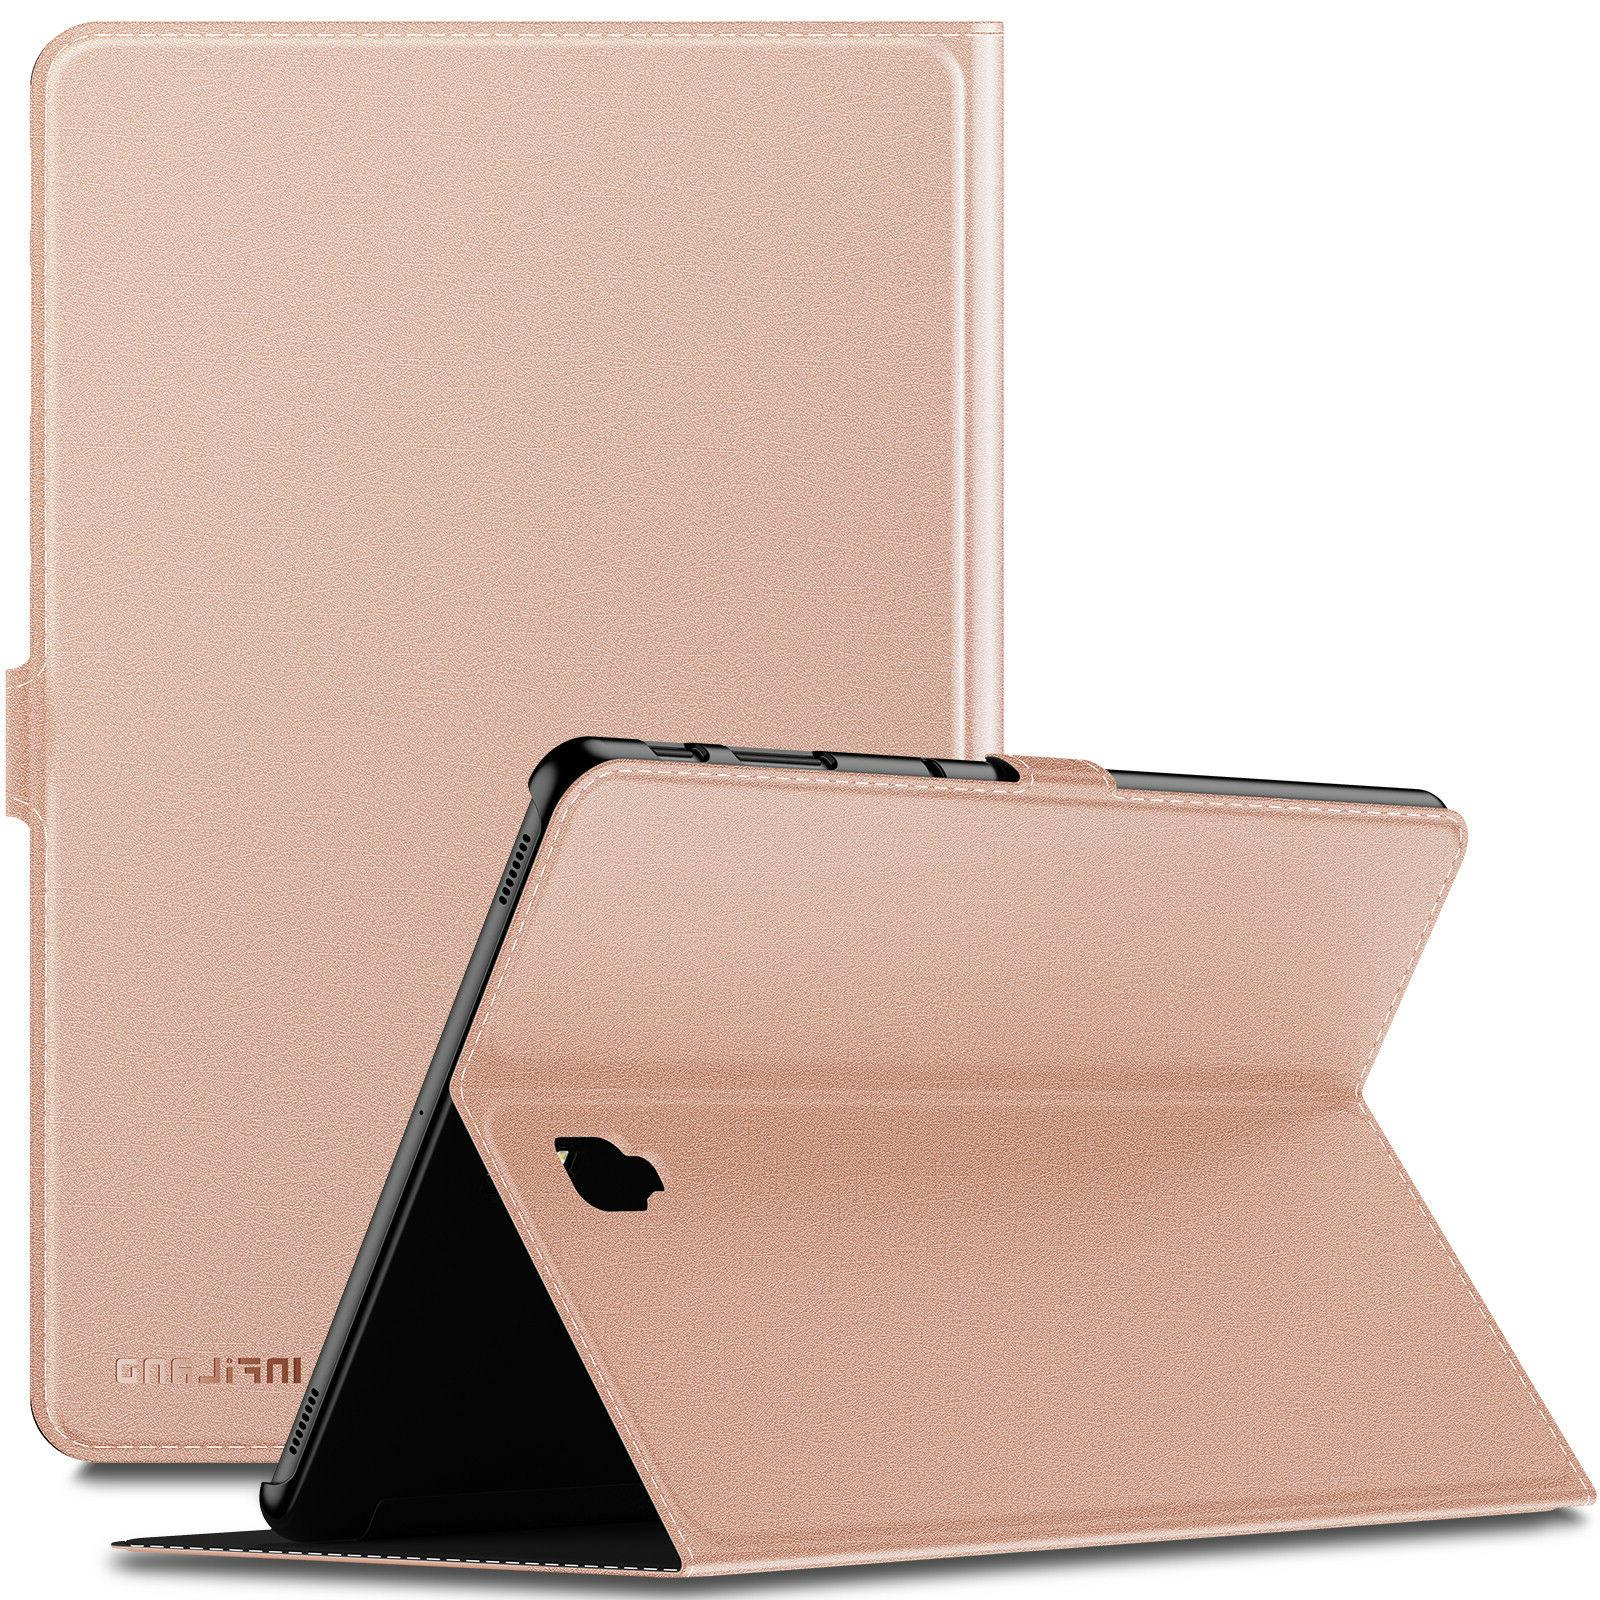 "Infiland Tablet Case Cover for Samsung Galaxy Tab S4 10.5"" 2"